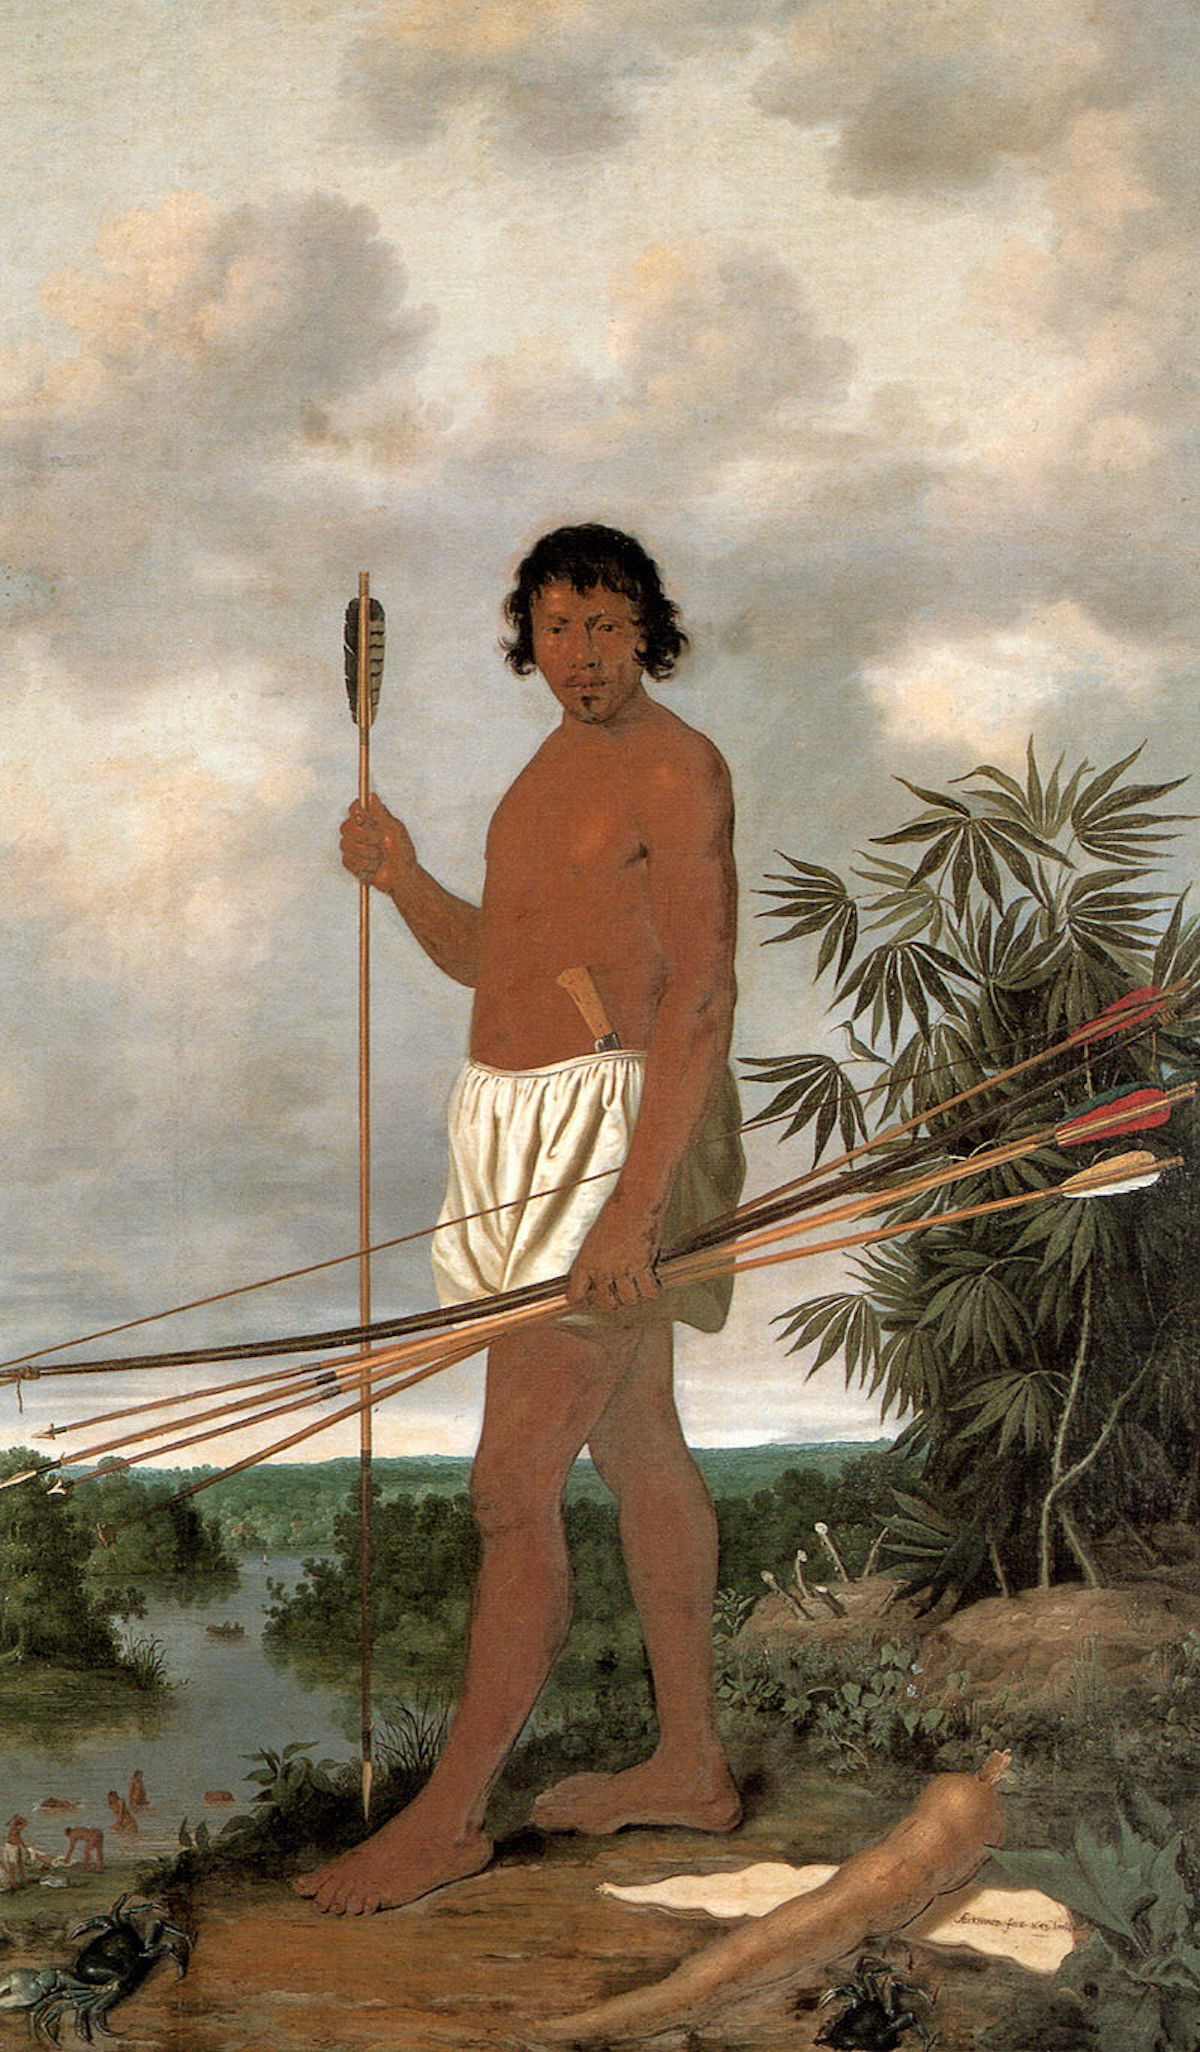 Albert Eckhout painting of a Tupi man. Source: Wikipedia